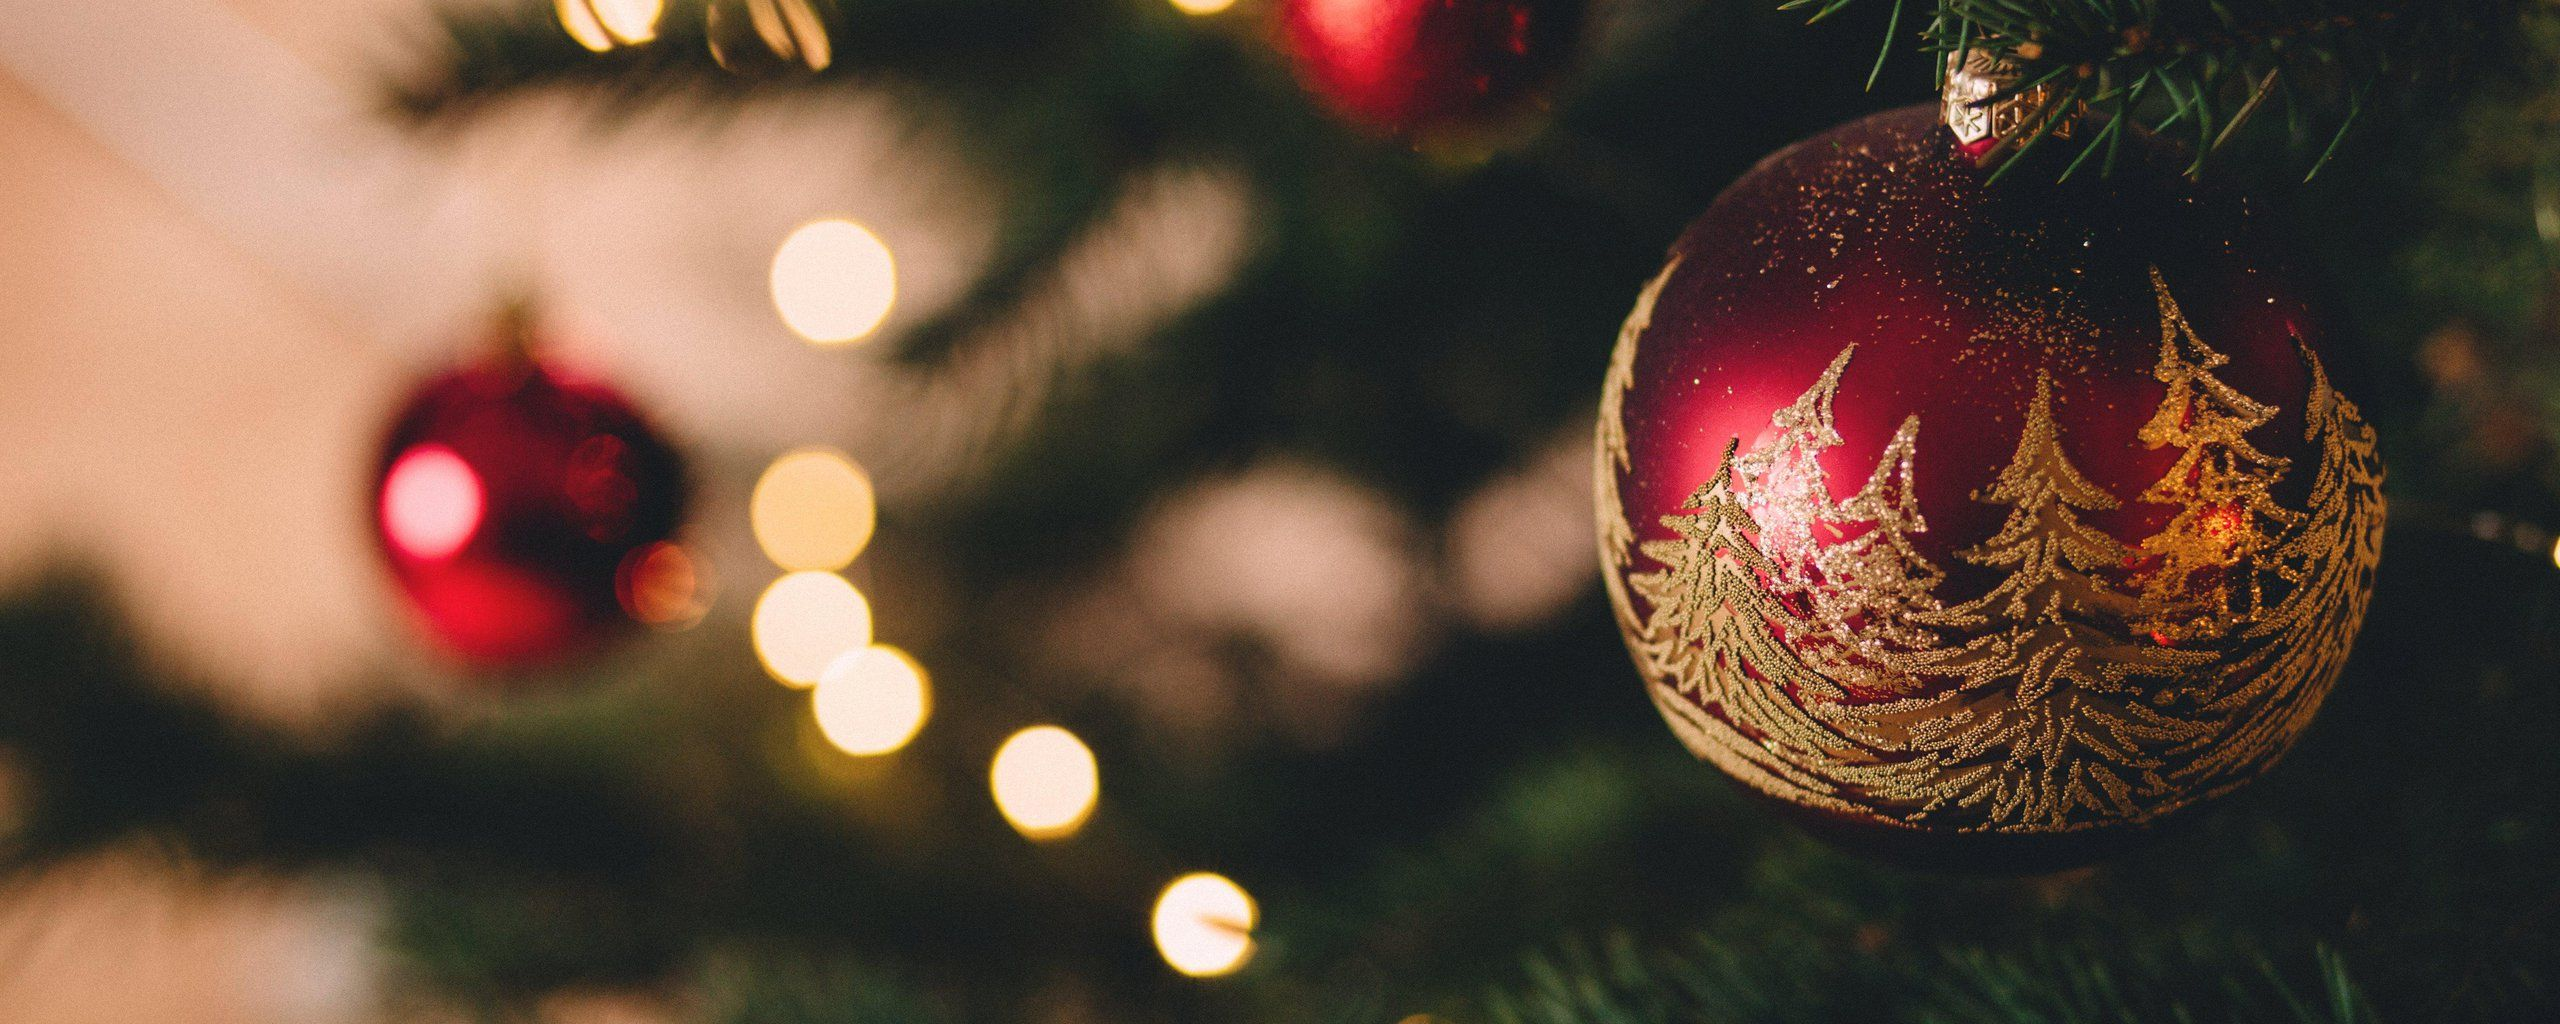 2560x1024 Download Dual Monitor Resolution ..Blurred Baubles Christmas Tree ...